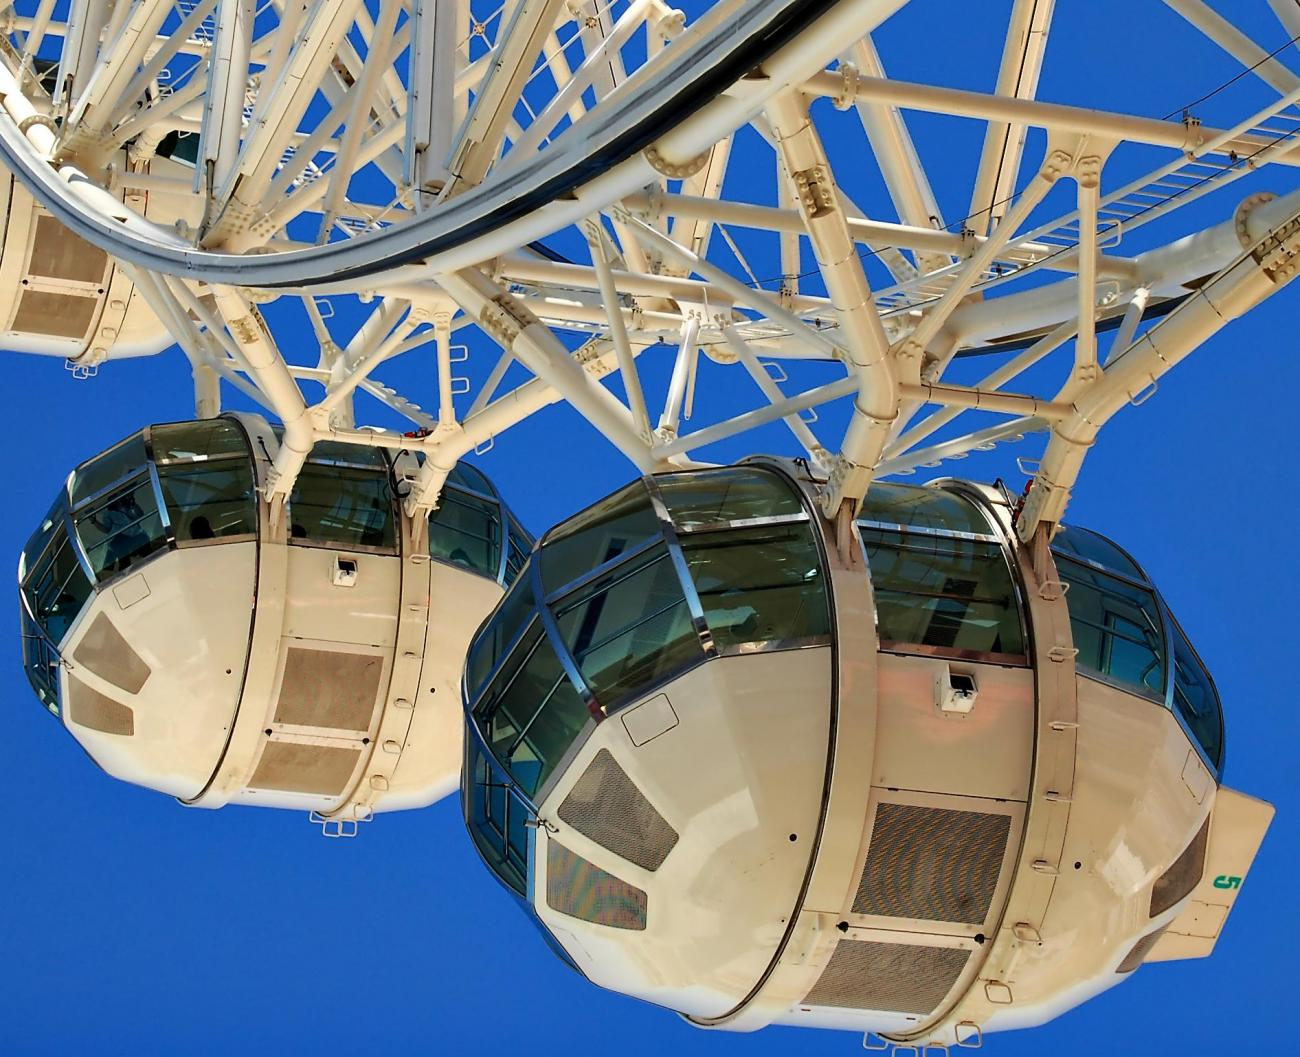 Southern Star Observation Wheel.